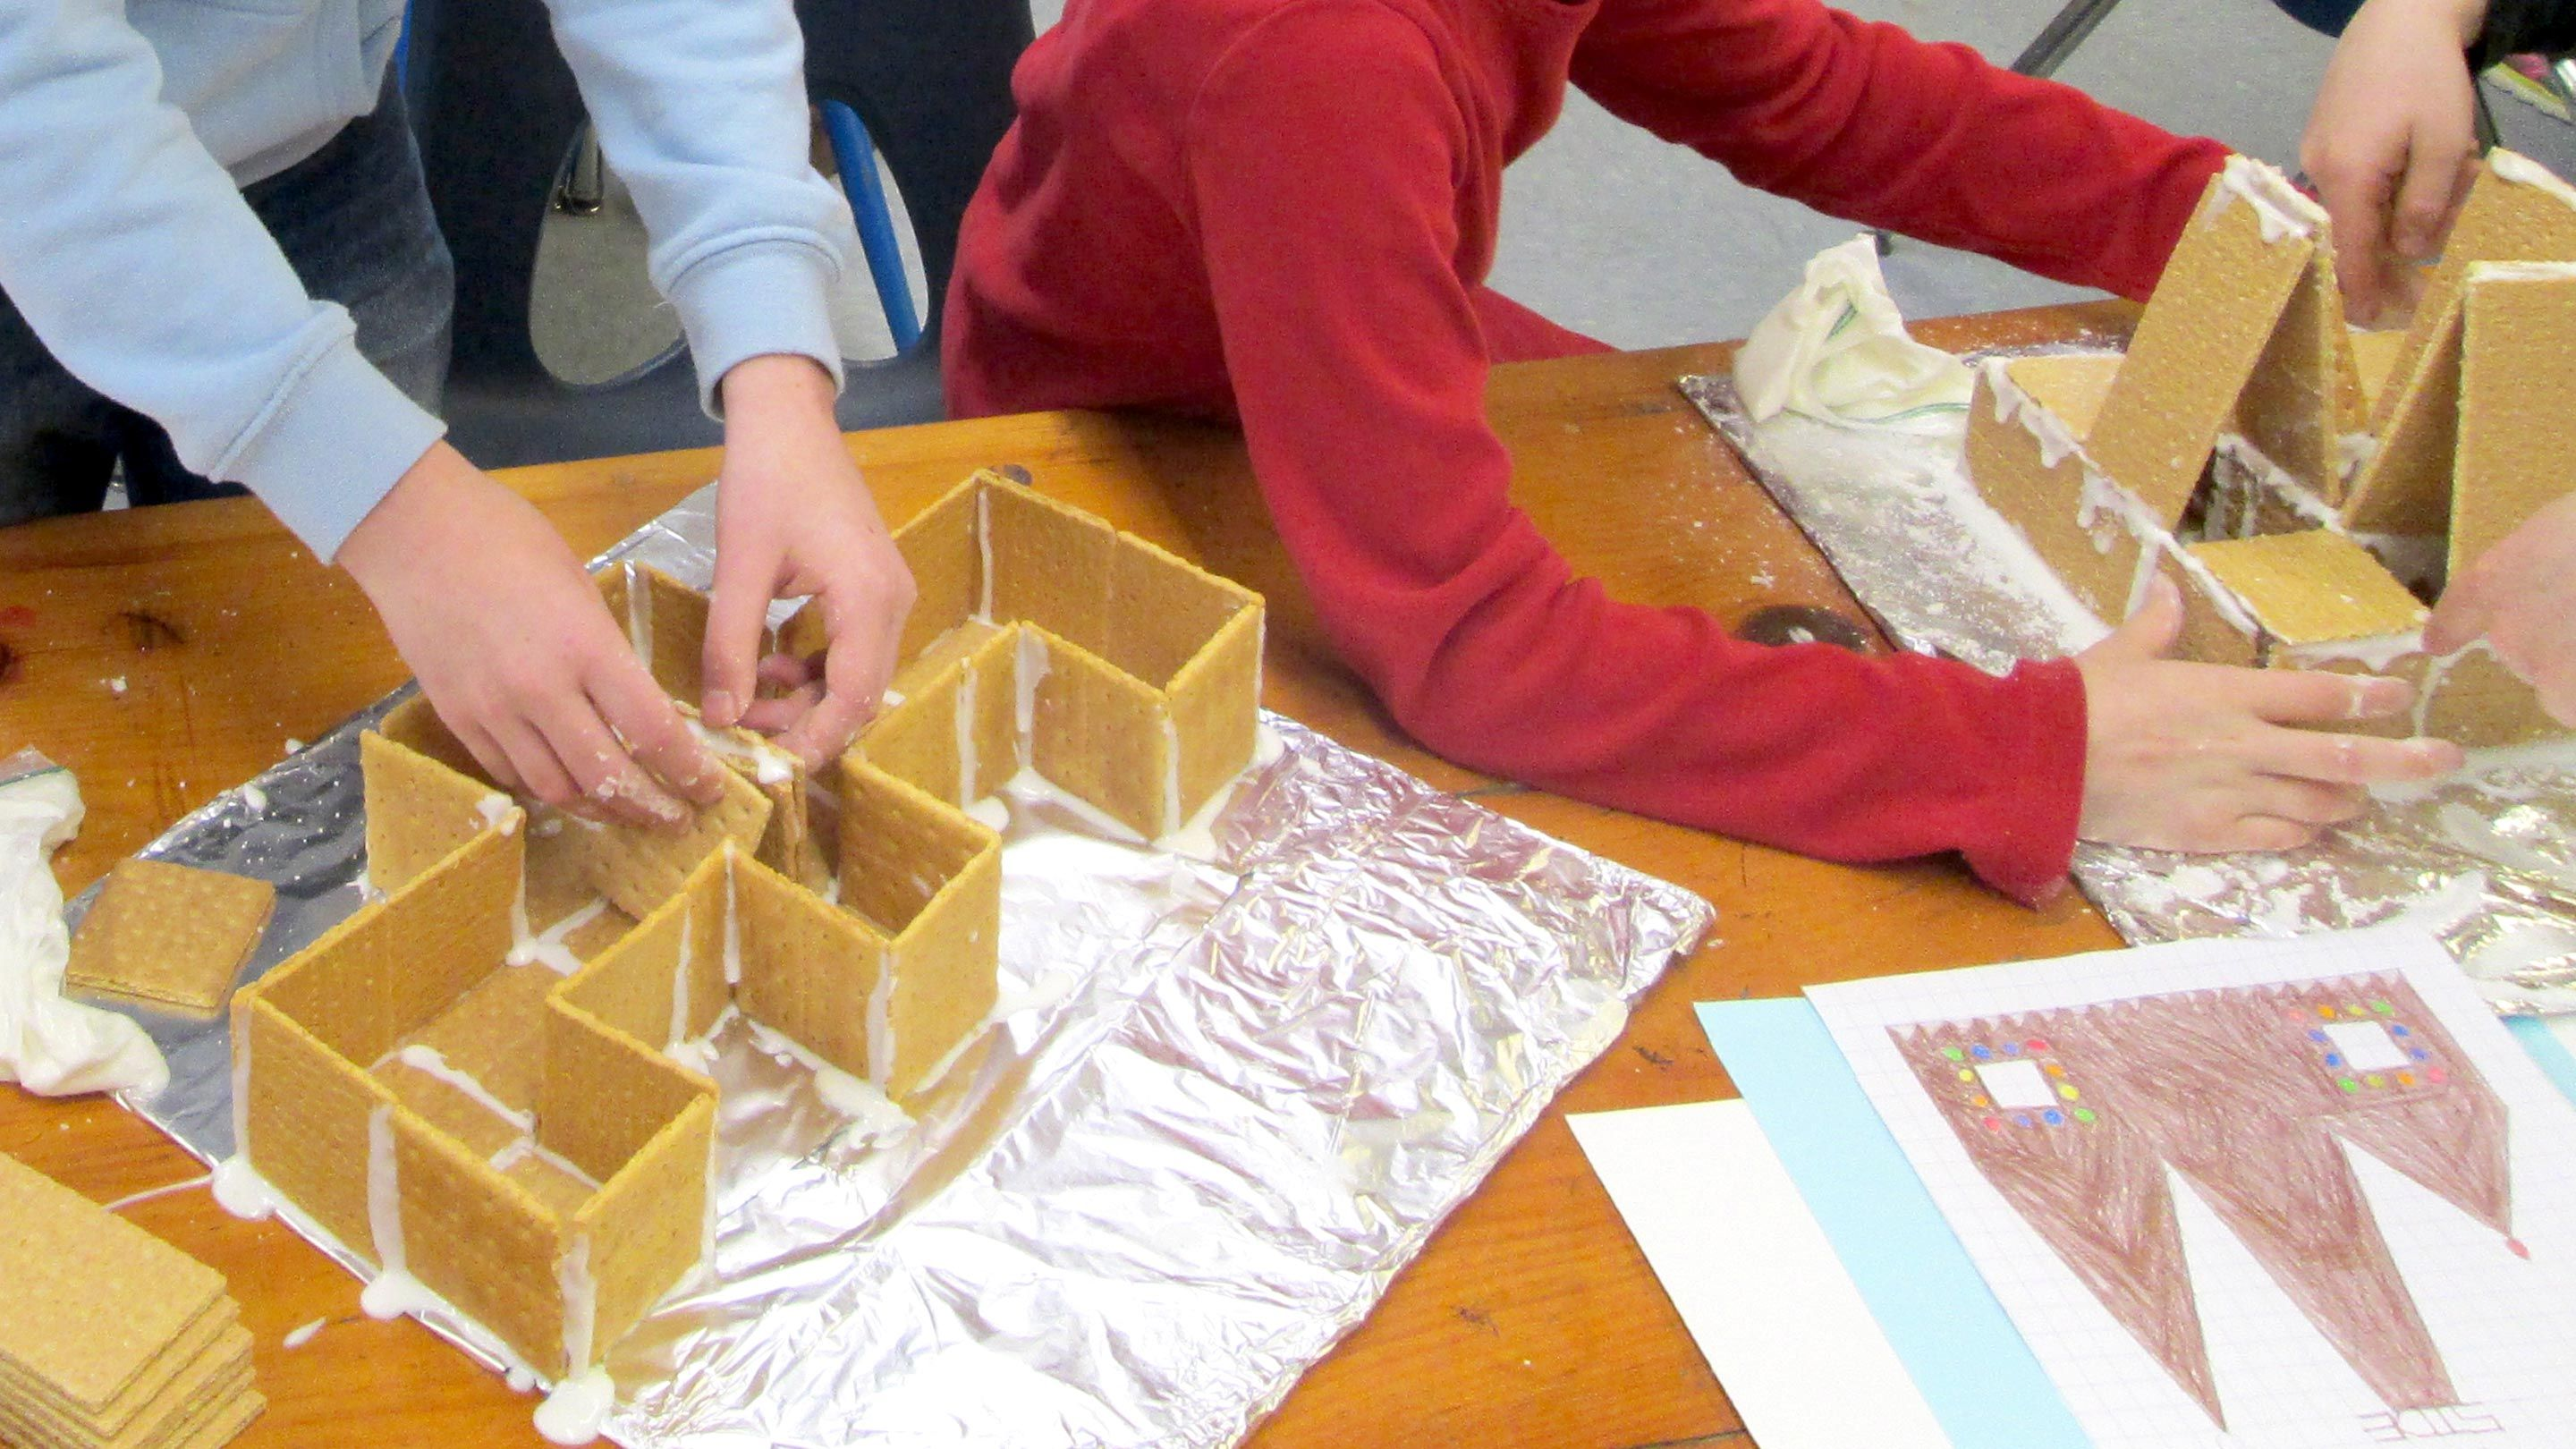 The Great Gingerbread House Project